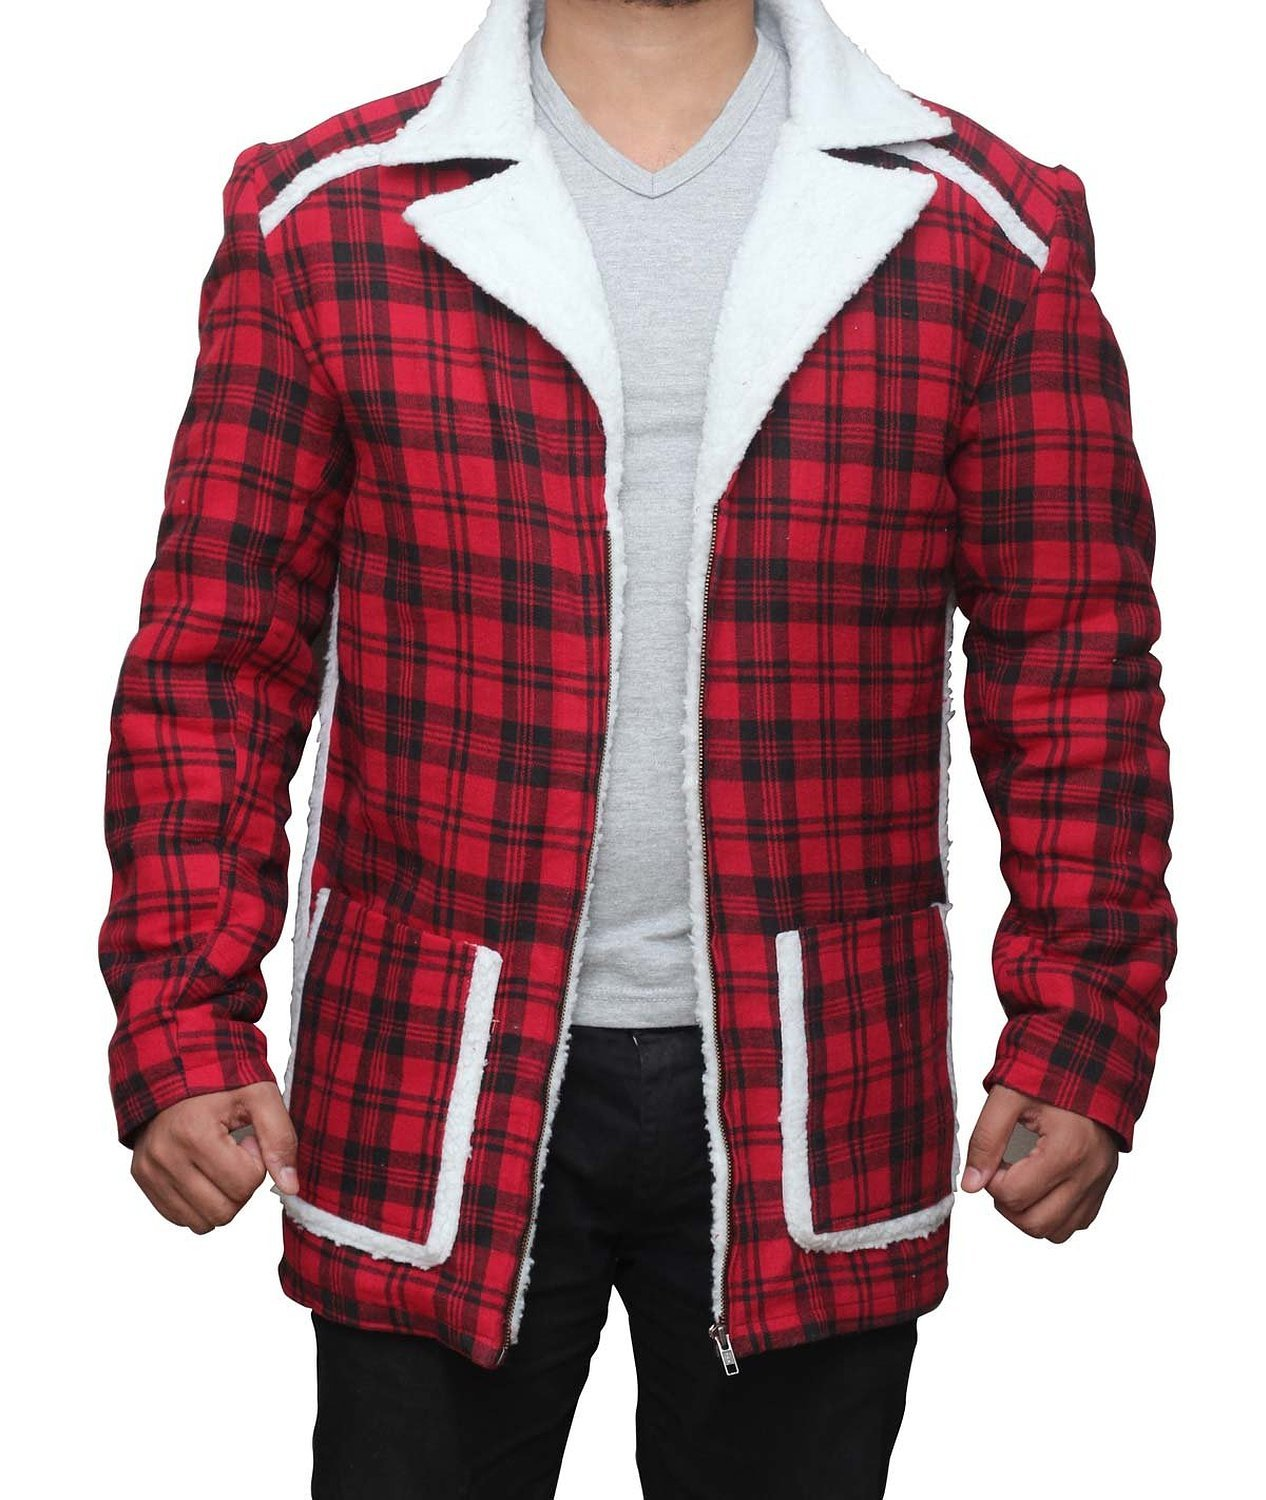 BlingSoul Deadpool Flannel Jacket Costume Cosplay - Faux shealing Coat For Halloween (L, Red Cotton) by BlingSoul (Image #1)